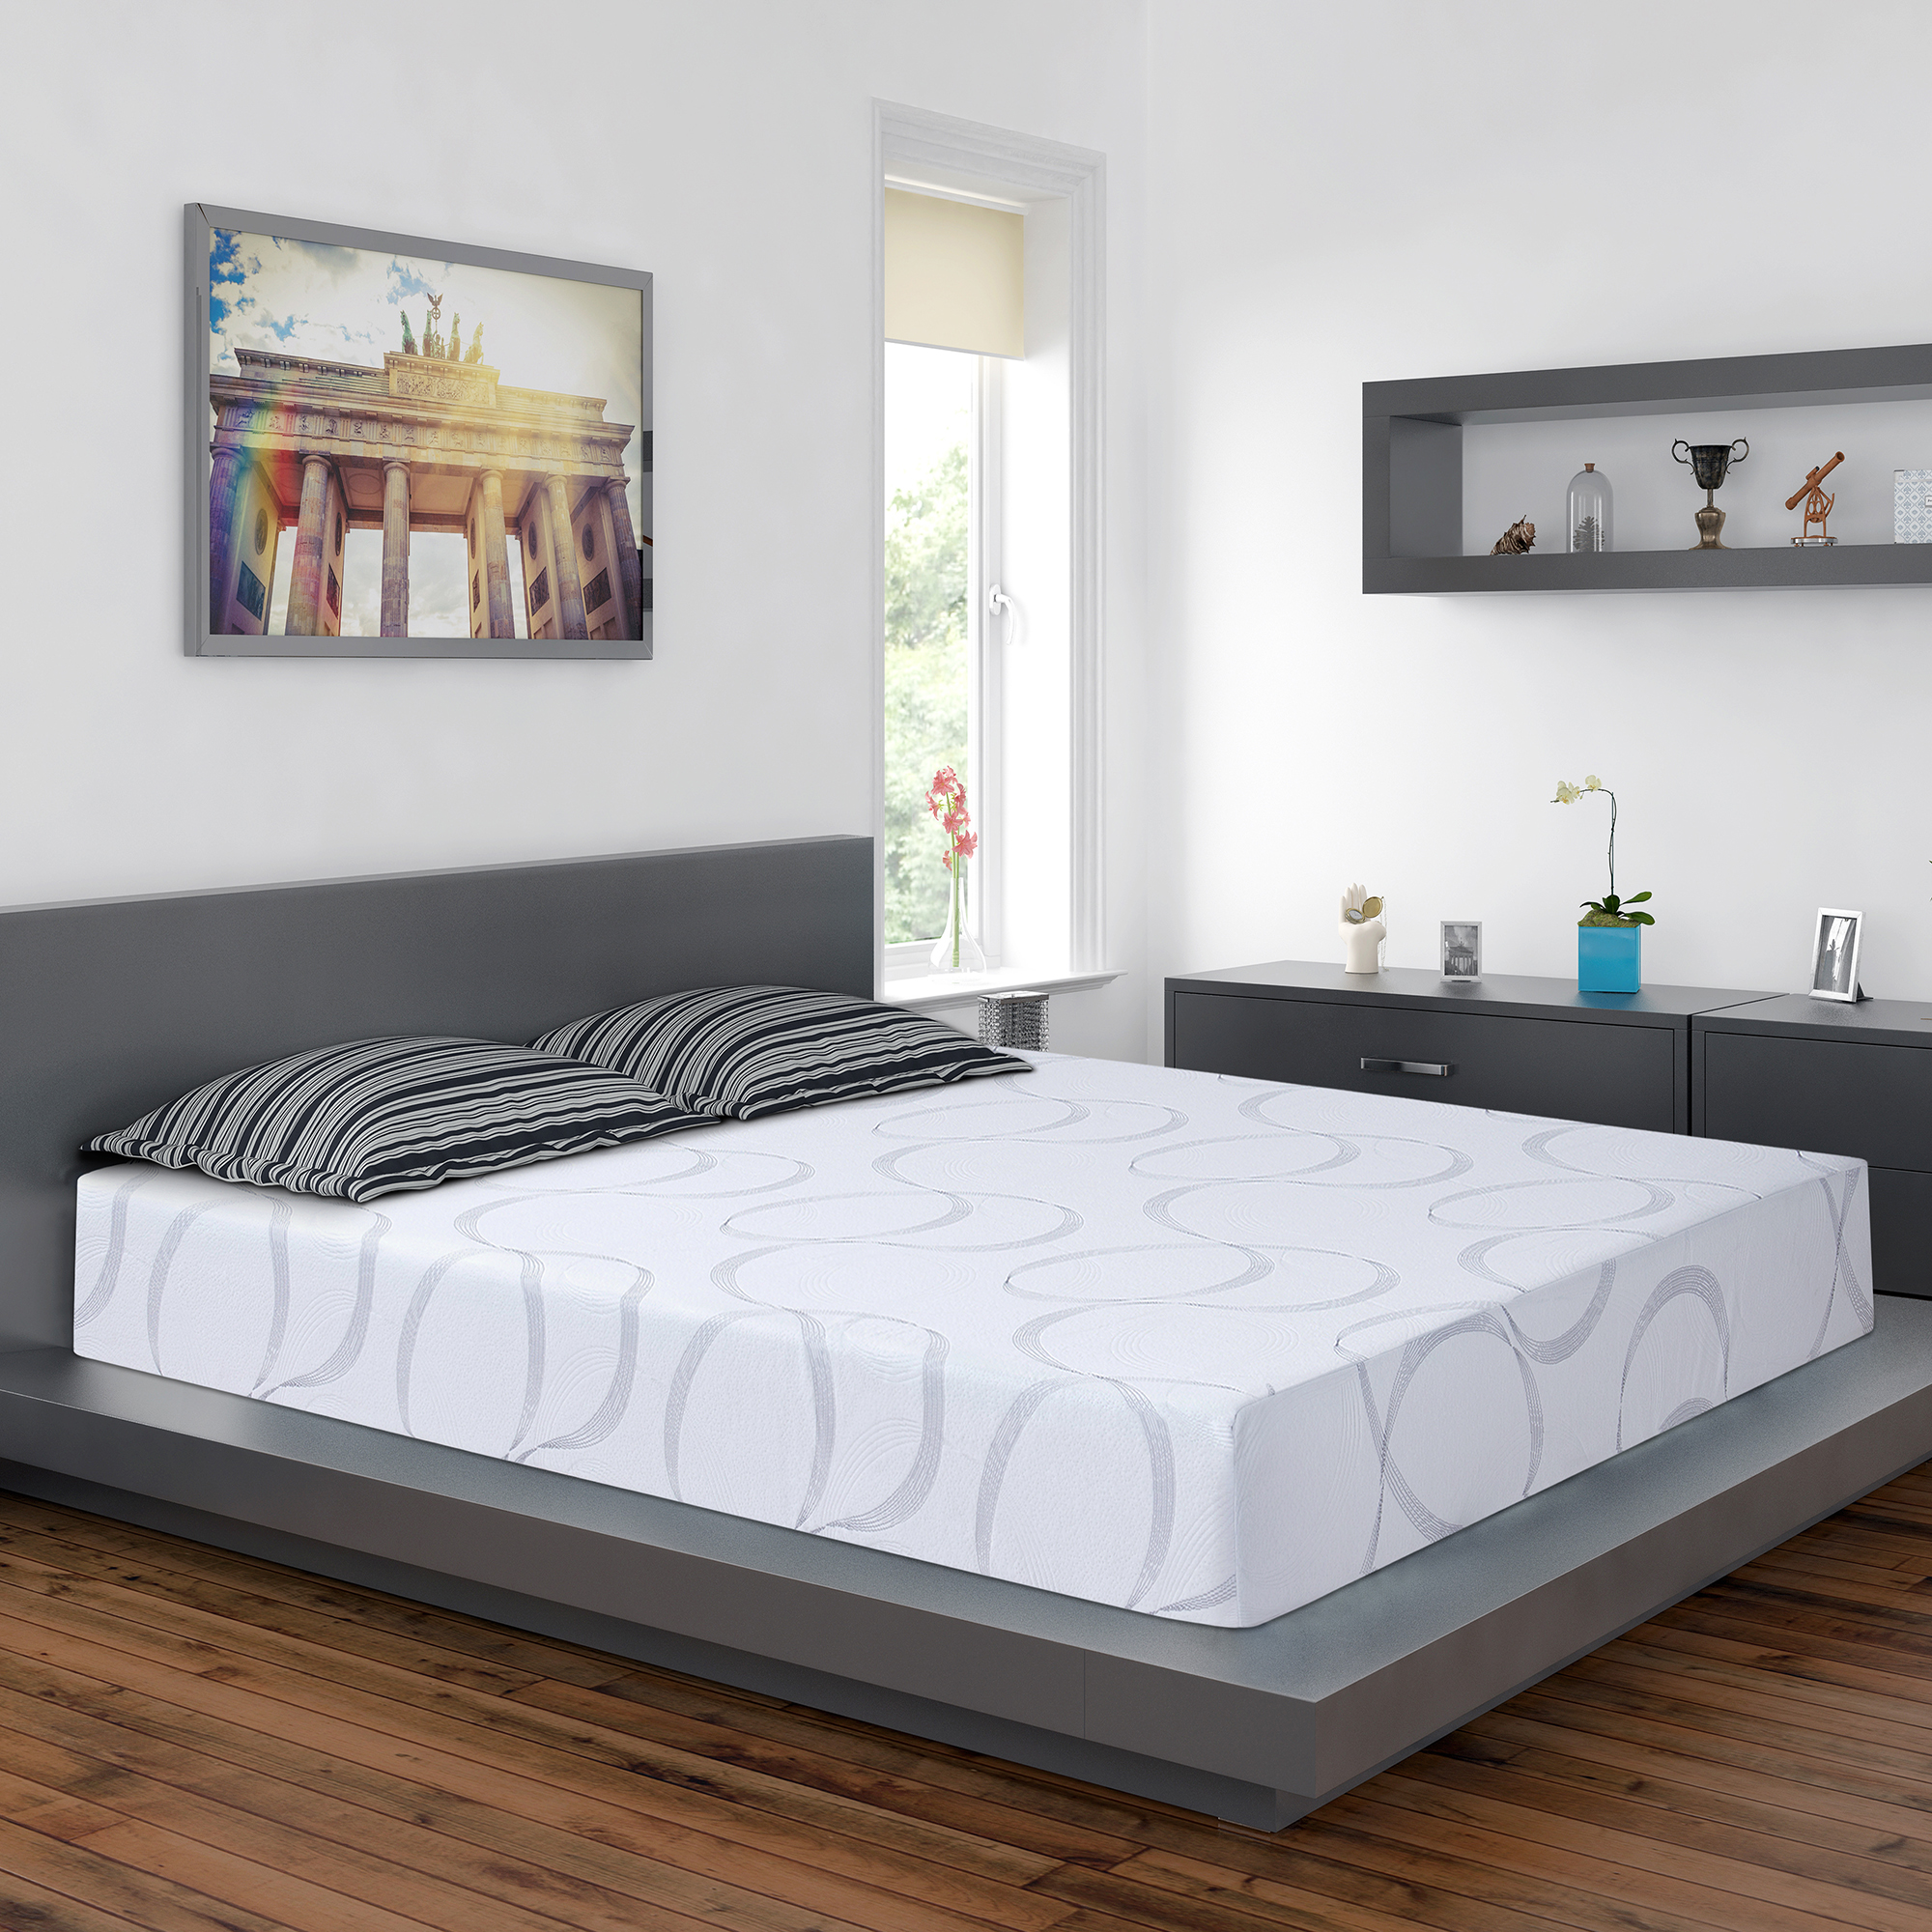 GranRest 9 Inch HD I-Gel Memory Foam Mattress, King